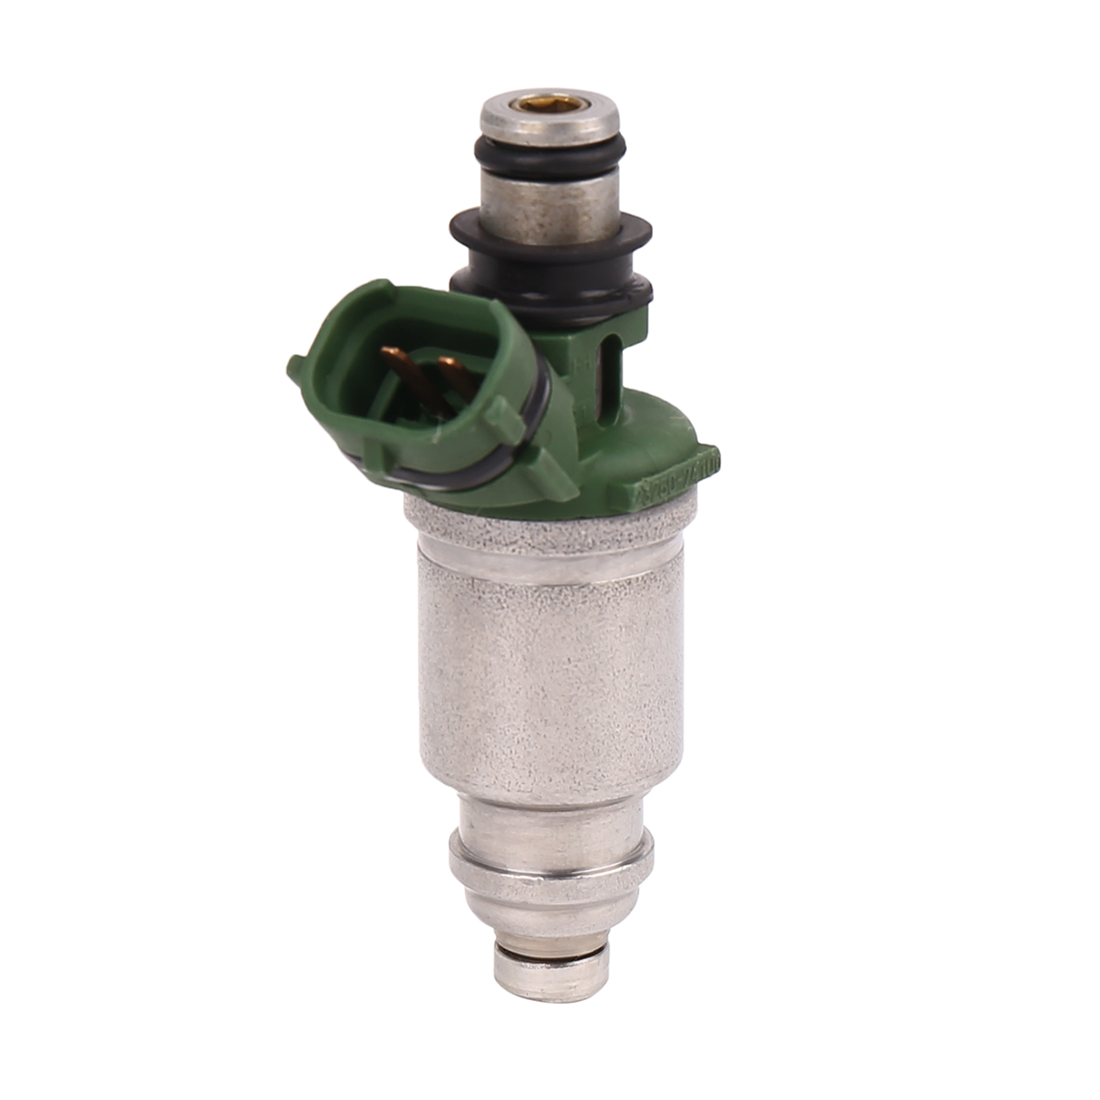 Car Fuel Injector 23250-74100 for Toyota Camry 1992-2000 Celica 1994-1999 DC 12V